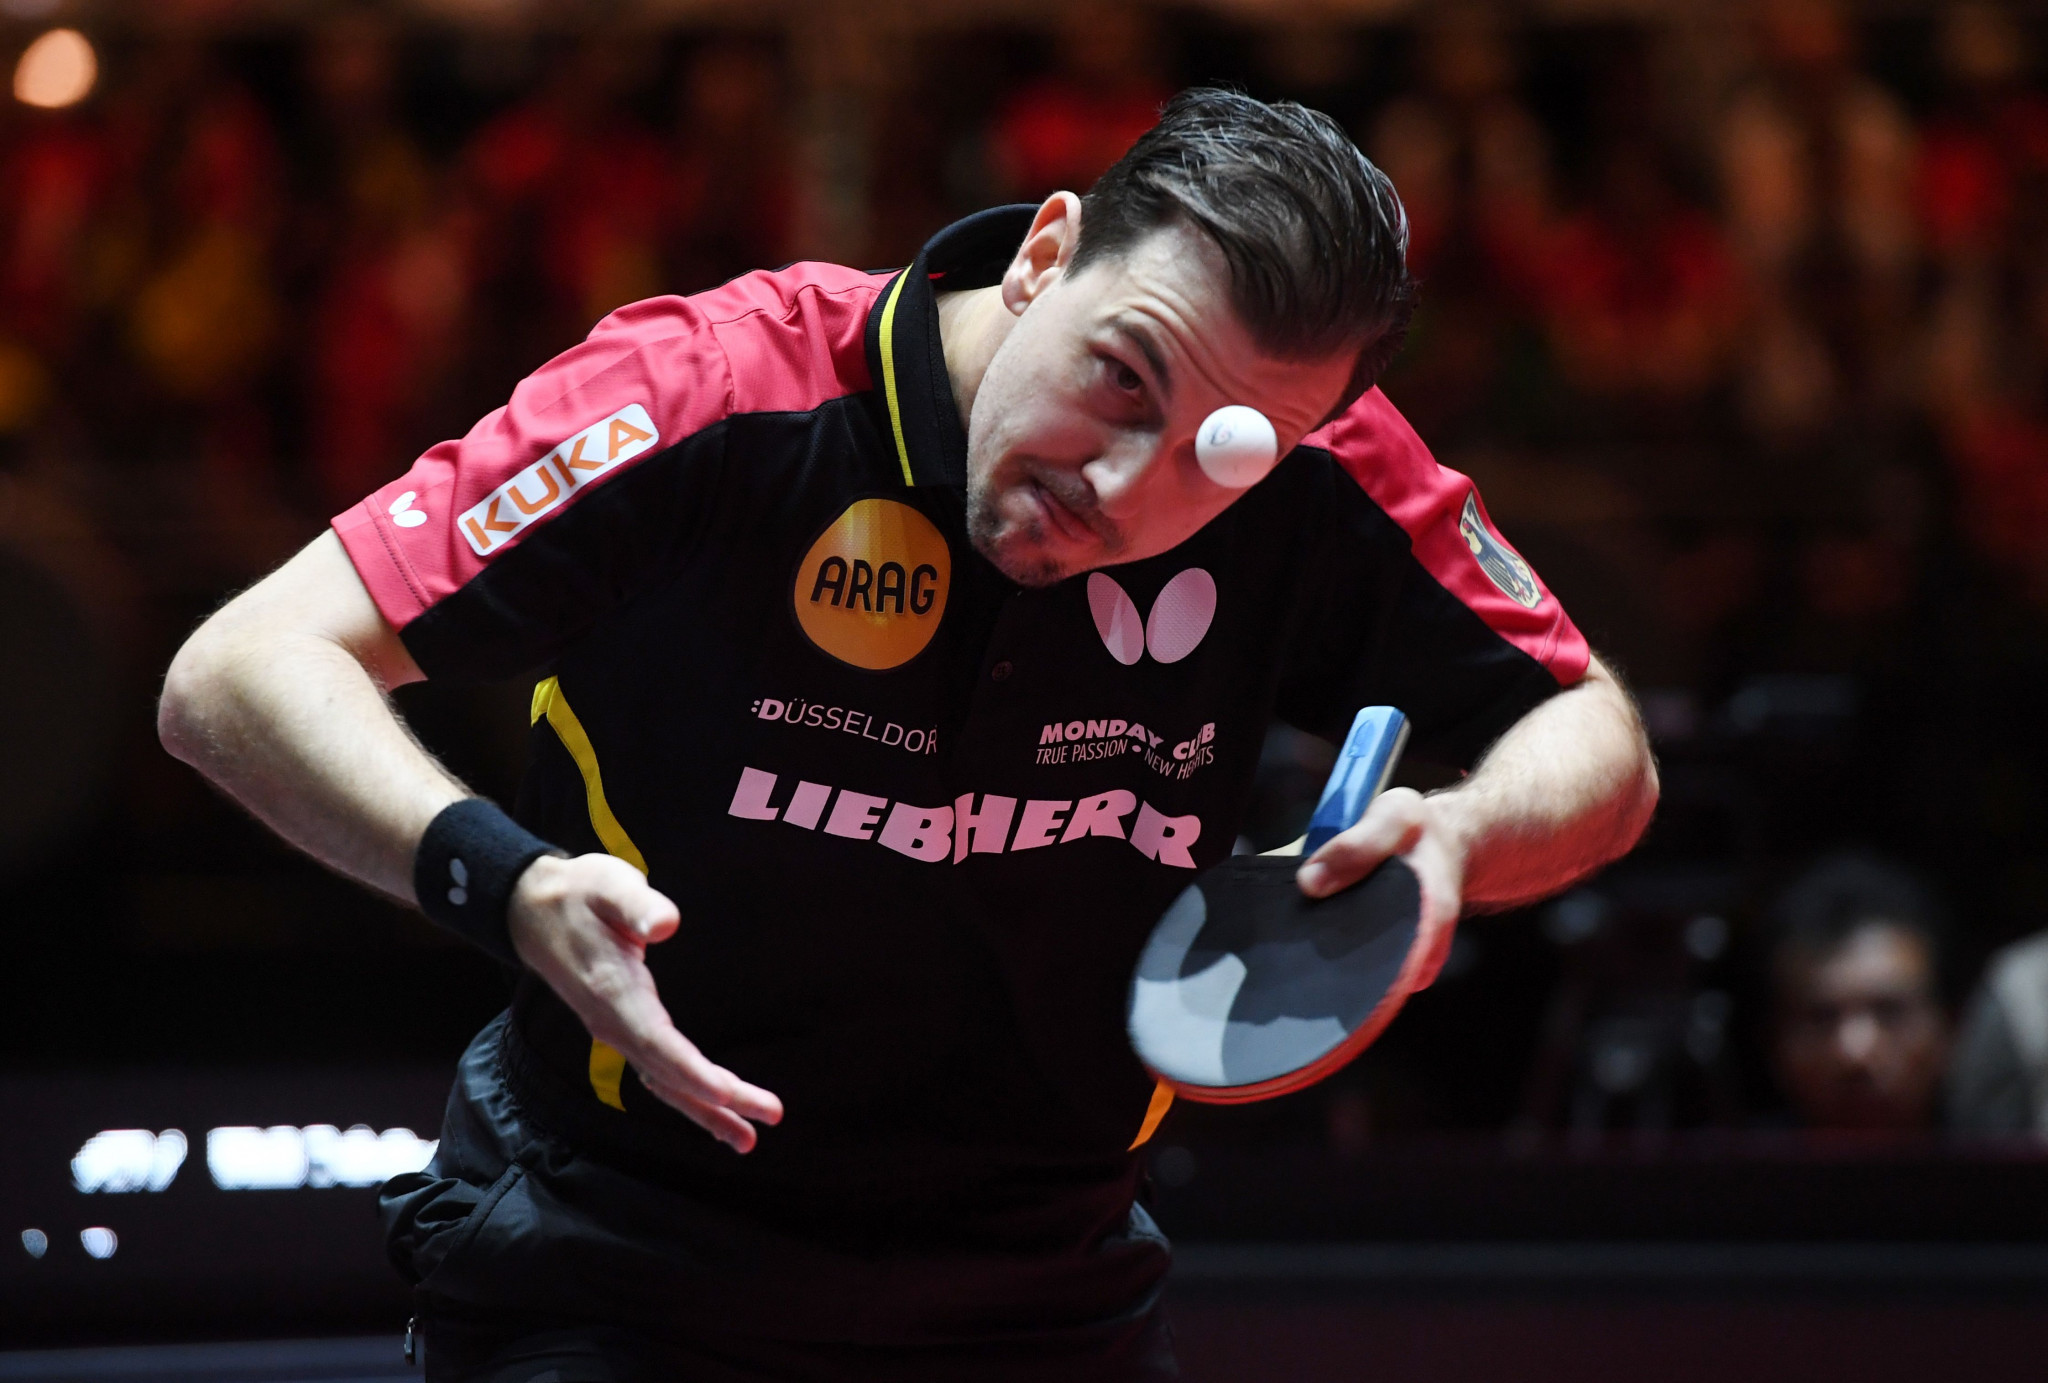 Timo Boll is the big surviving German hope in the men's singles draw ©Getty Images